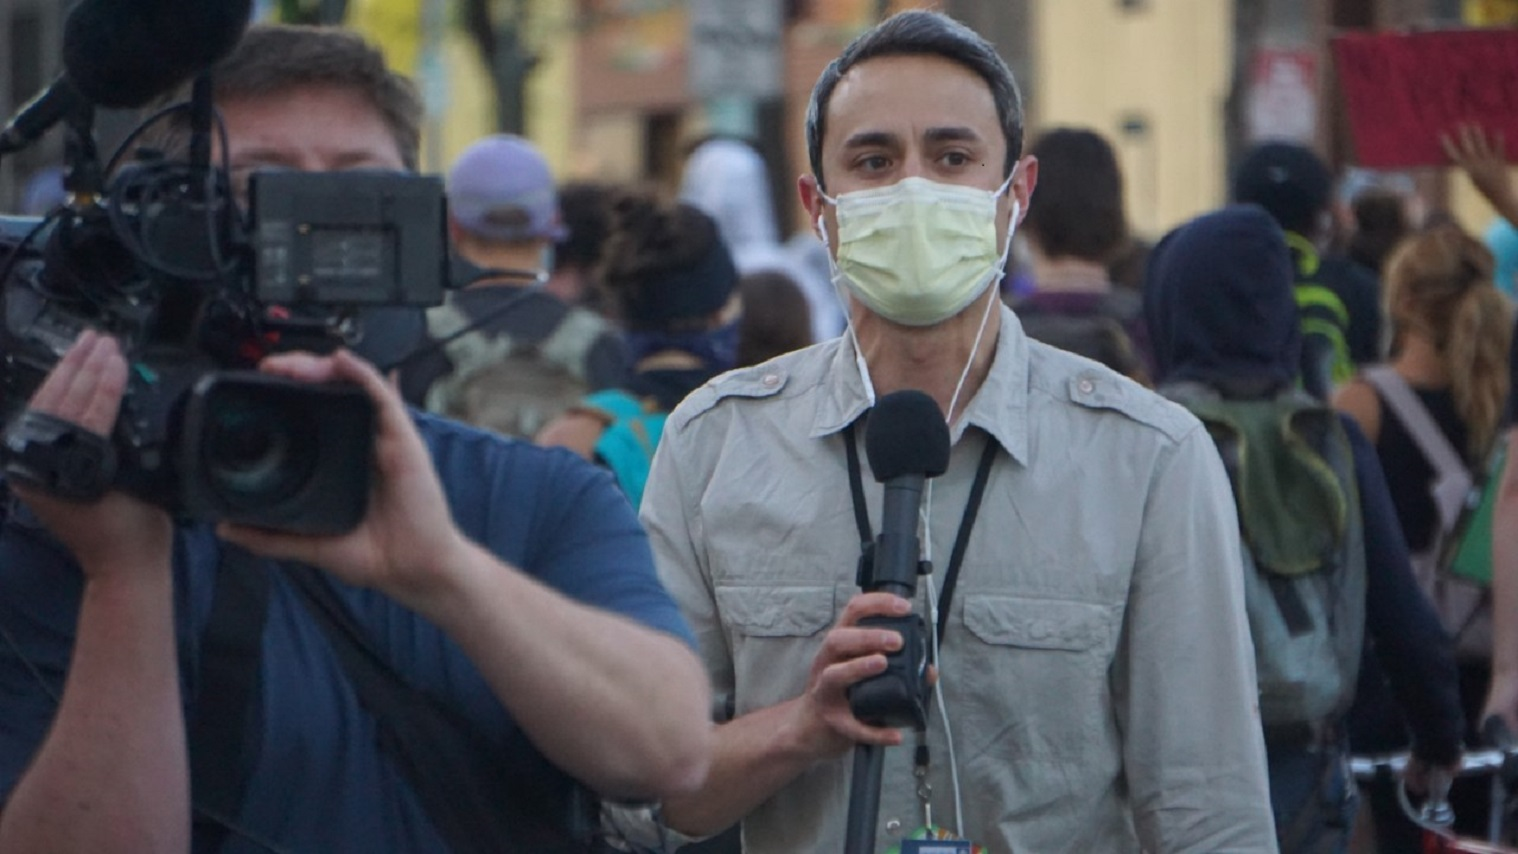 Man reporting with face mask